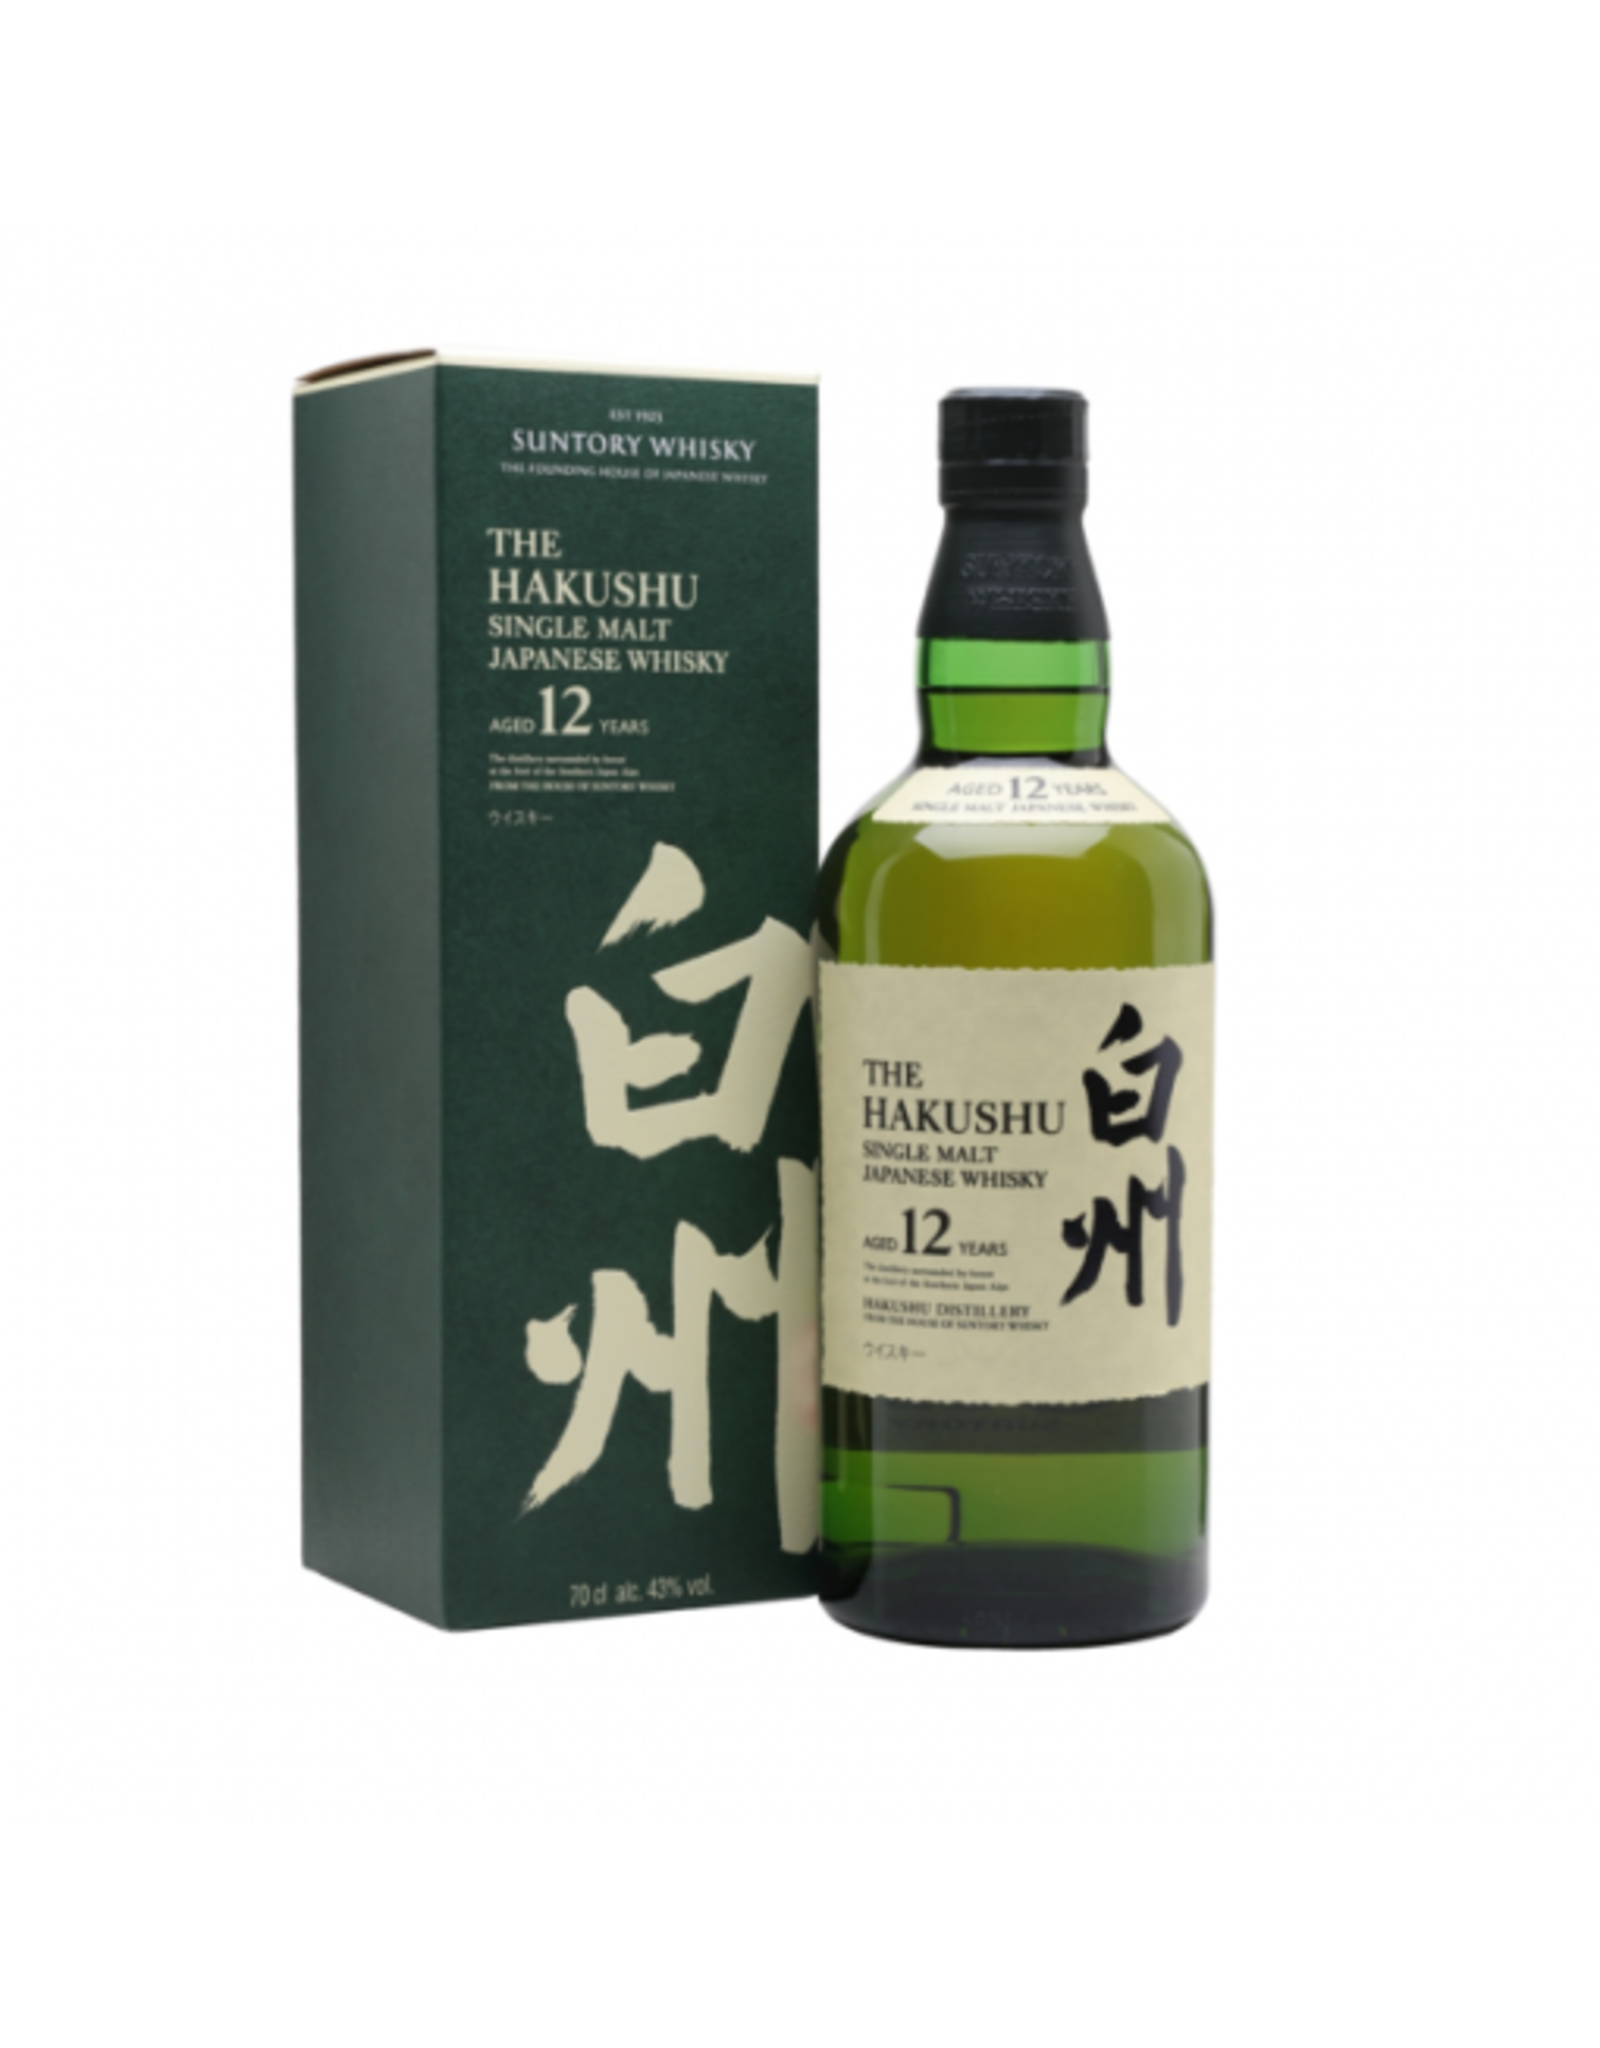 Japan The Hakushu single malt 12yrs